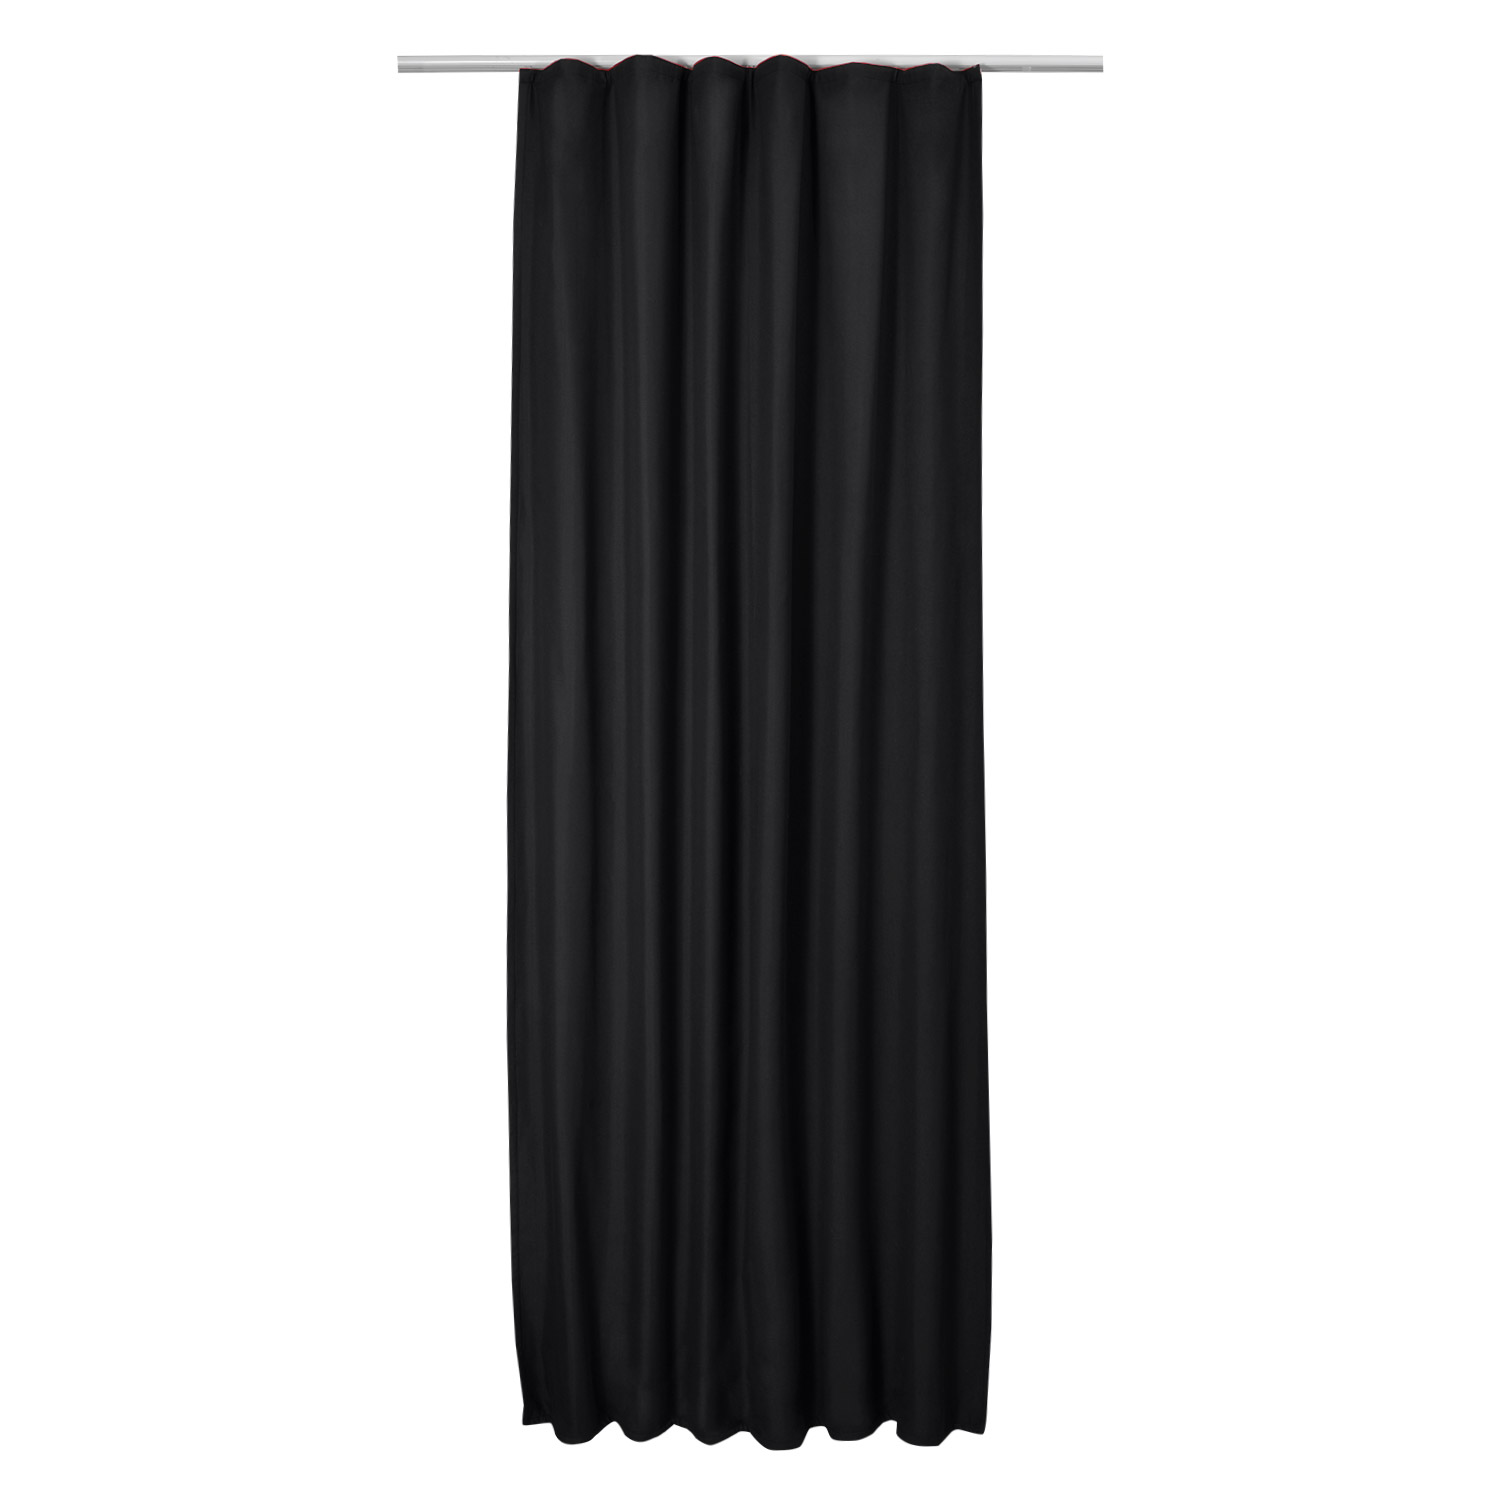 thermo universalband vorhang 140cm x 245cm schwarz. Black Bedroom Furniture Sets. Home Design Ideas